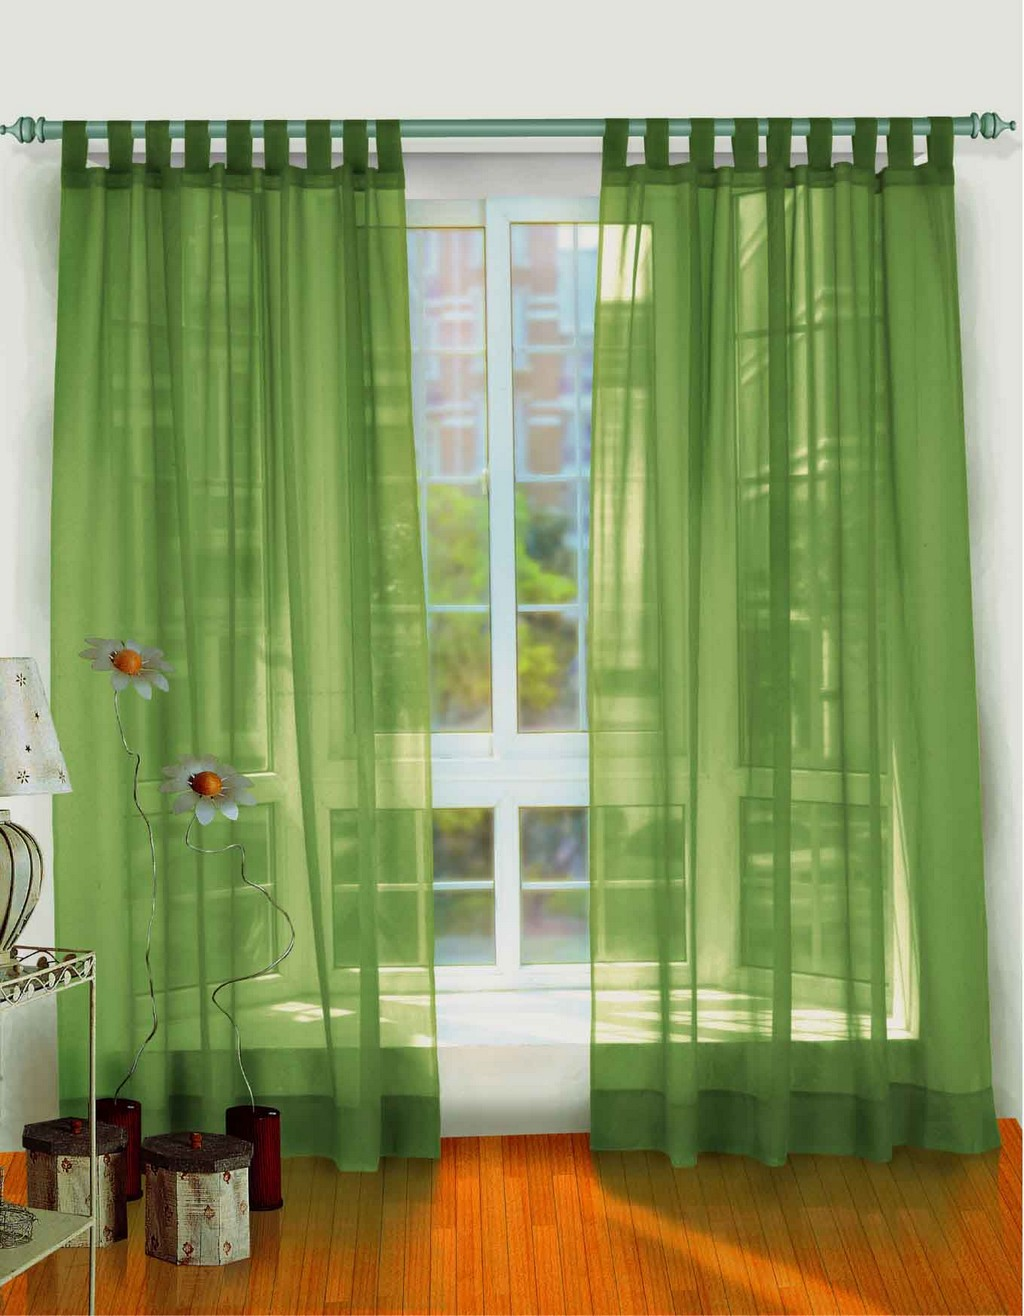 bathroom curtains, theatrical curtains backdrops, tortilla curtain, curtains breakfast room kitchen earth tones